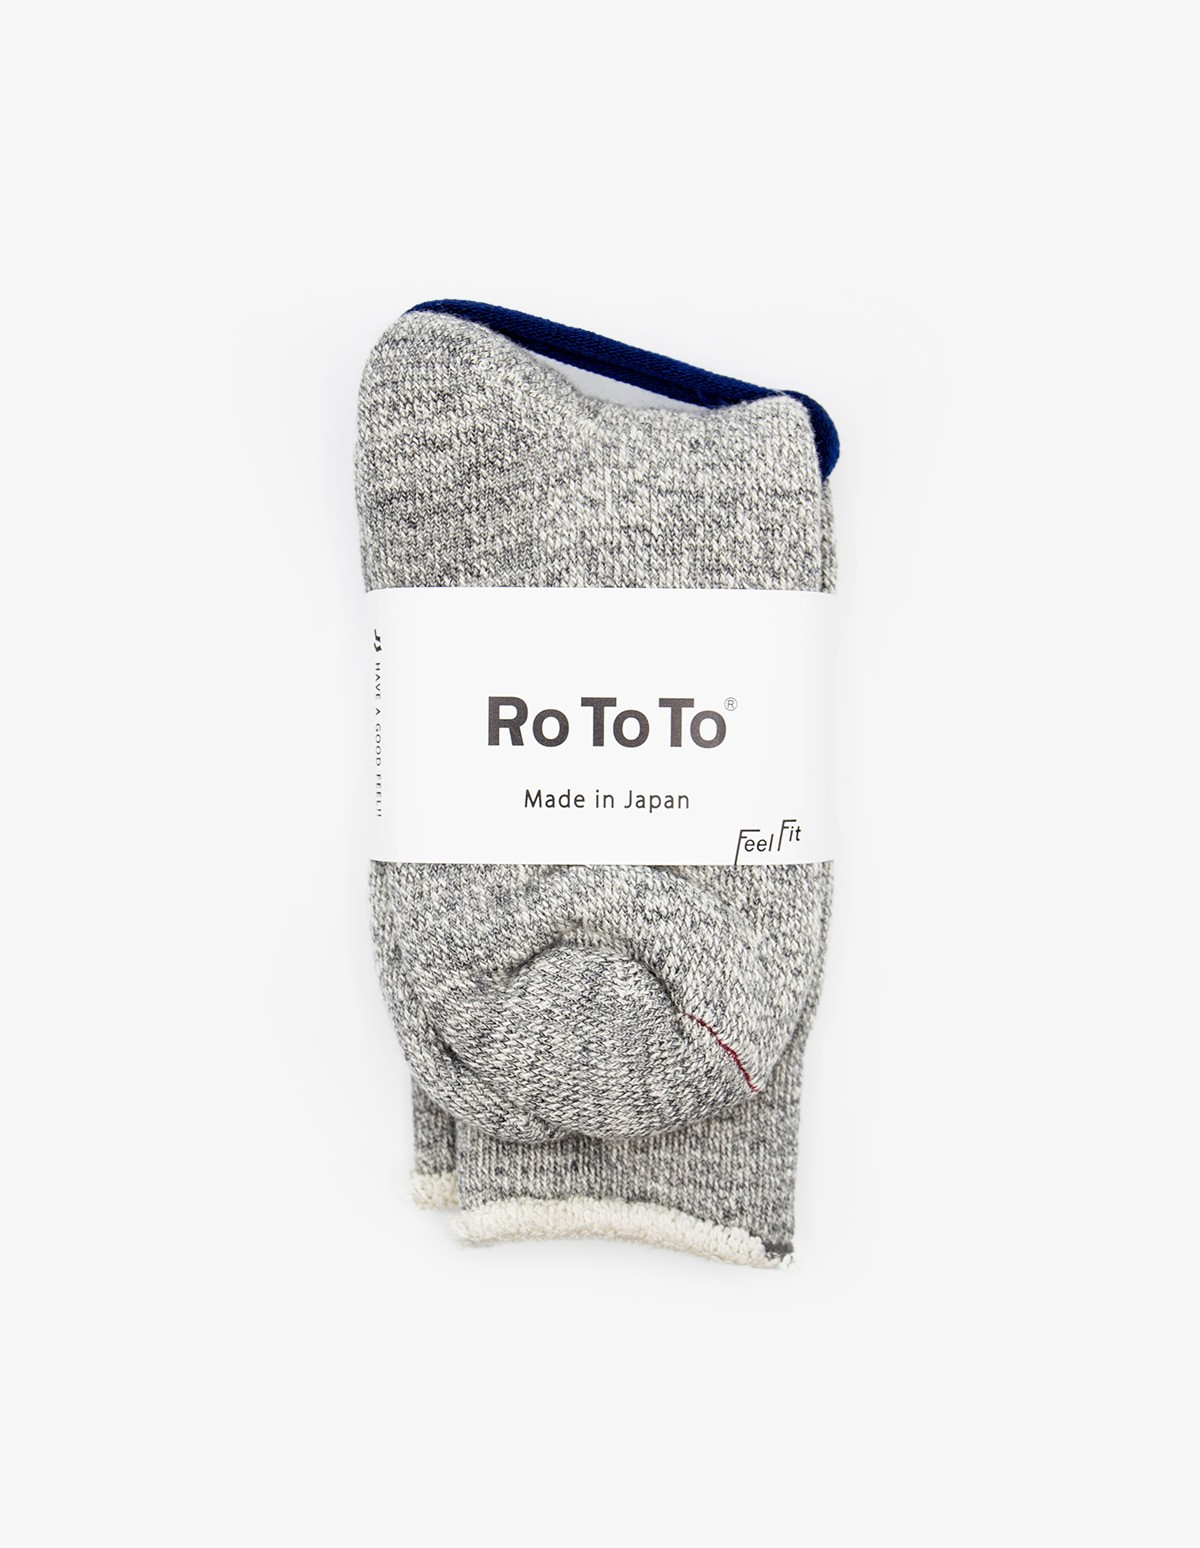 RoToTo Double Face Socks in Charcoal